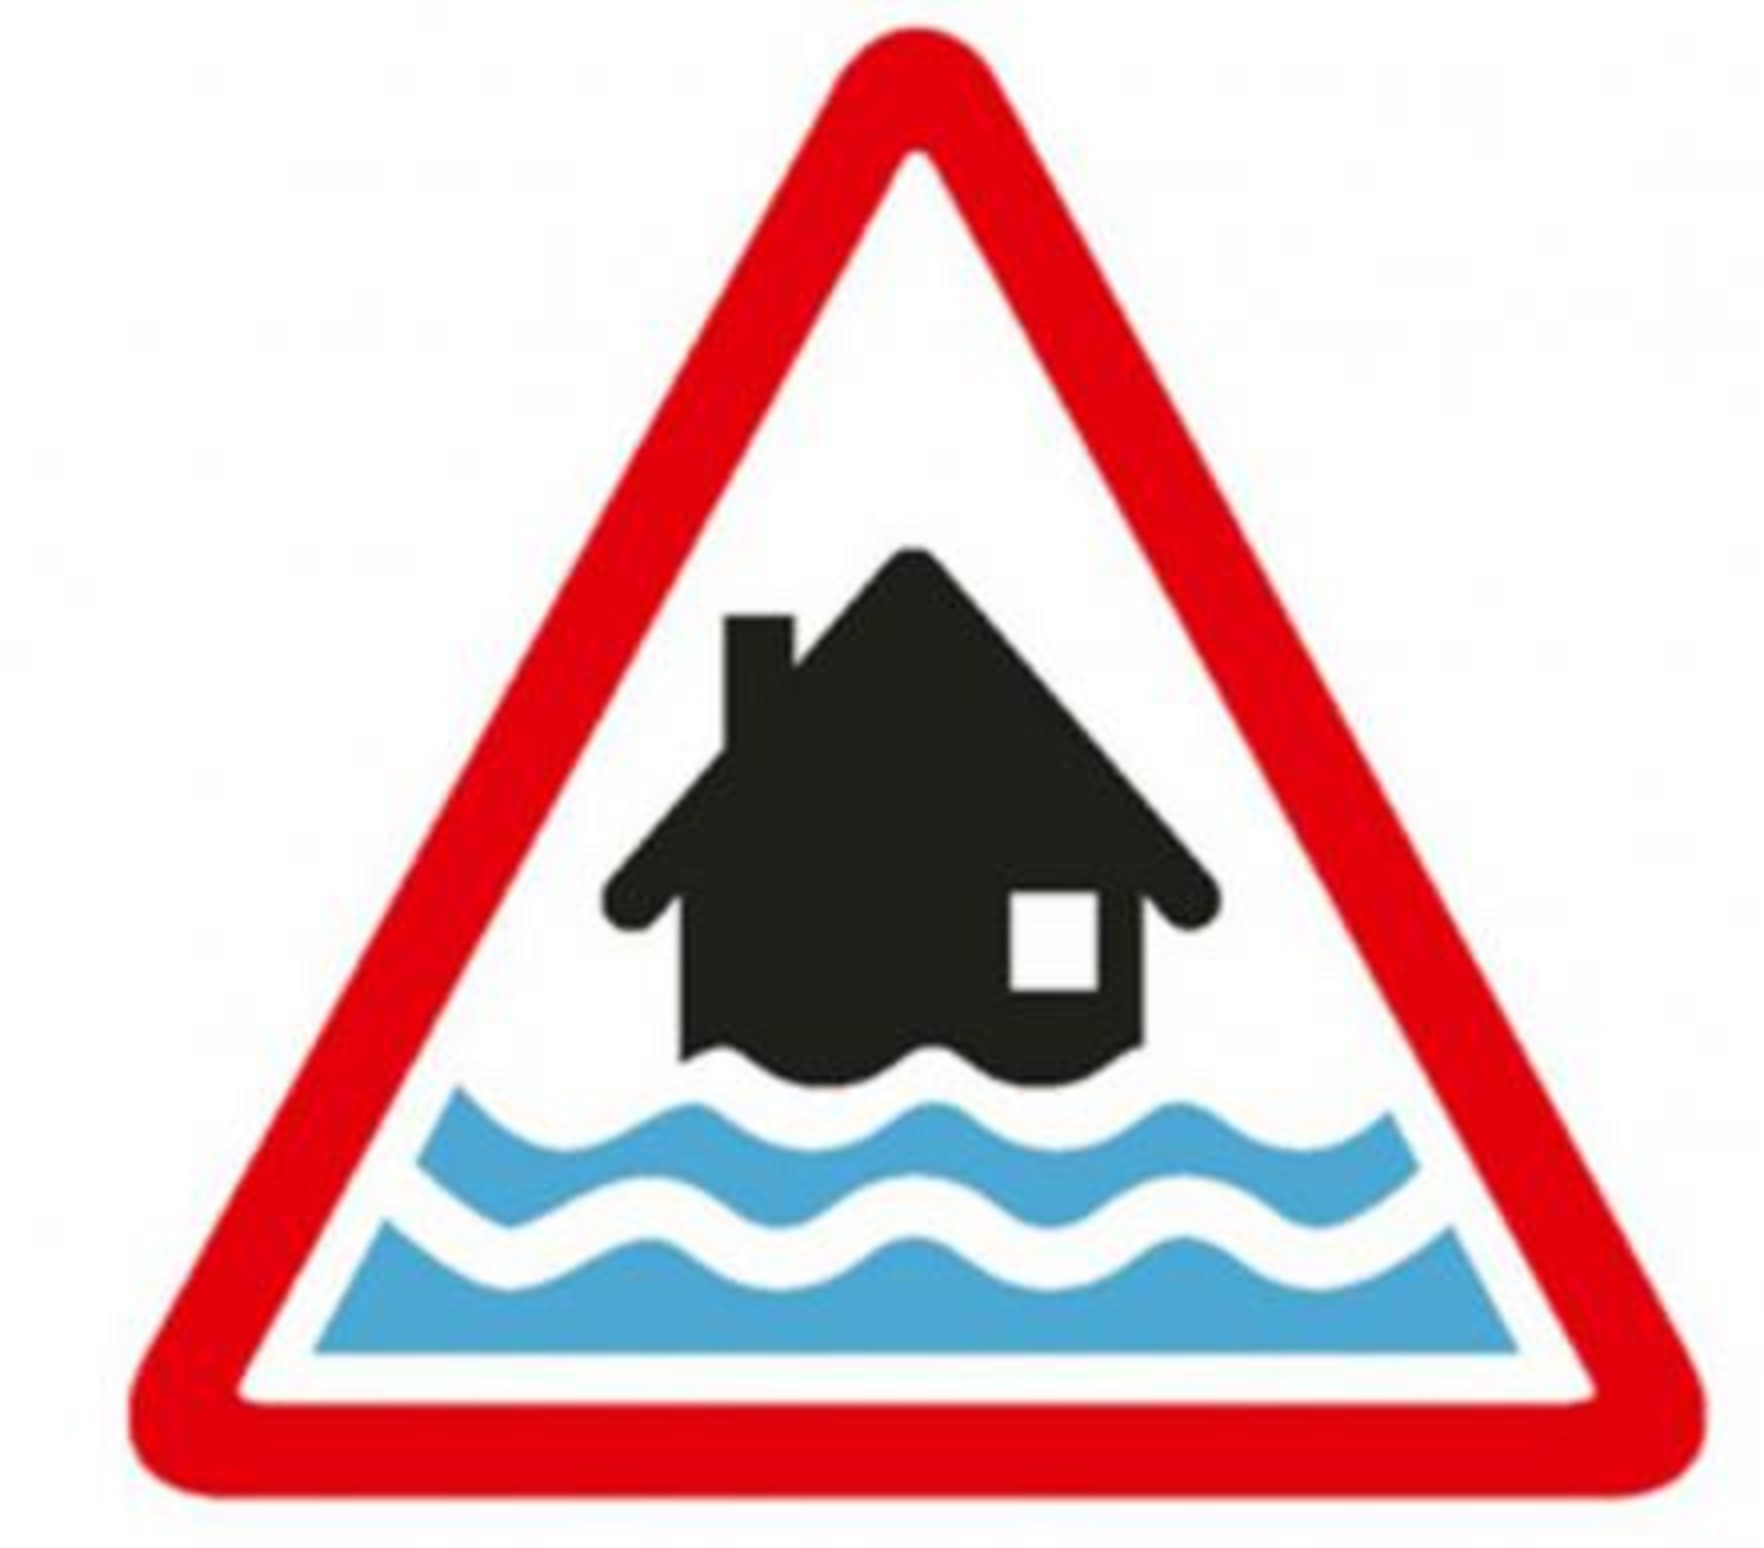 Oxfordshire warned to prepare for more floods